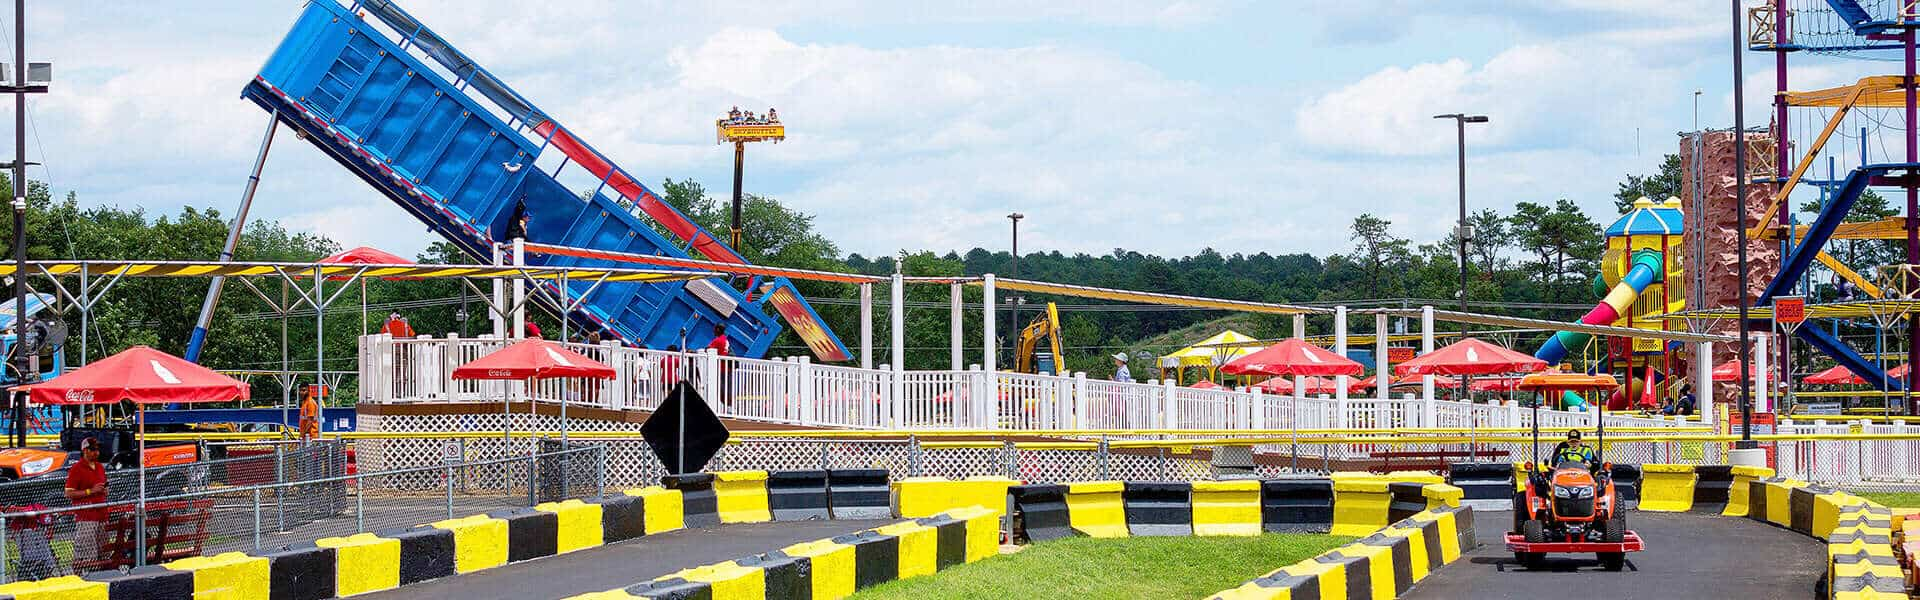 Diggerland overview Greased Beast tractor food fun